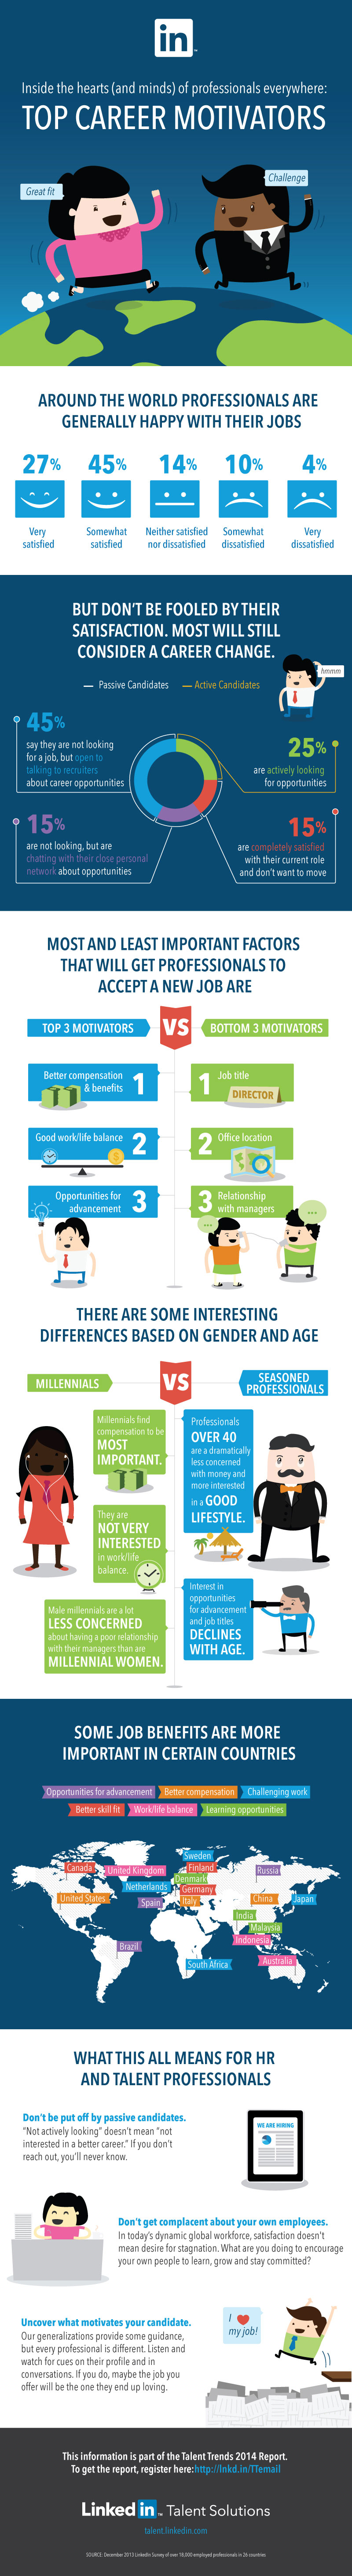 infographic what motivates professionals to switch jobs infographic what motivates professionals to switch jobs